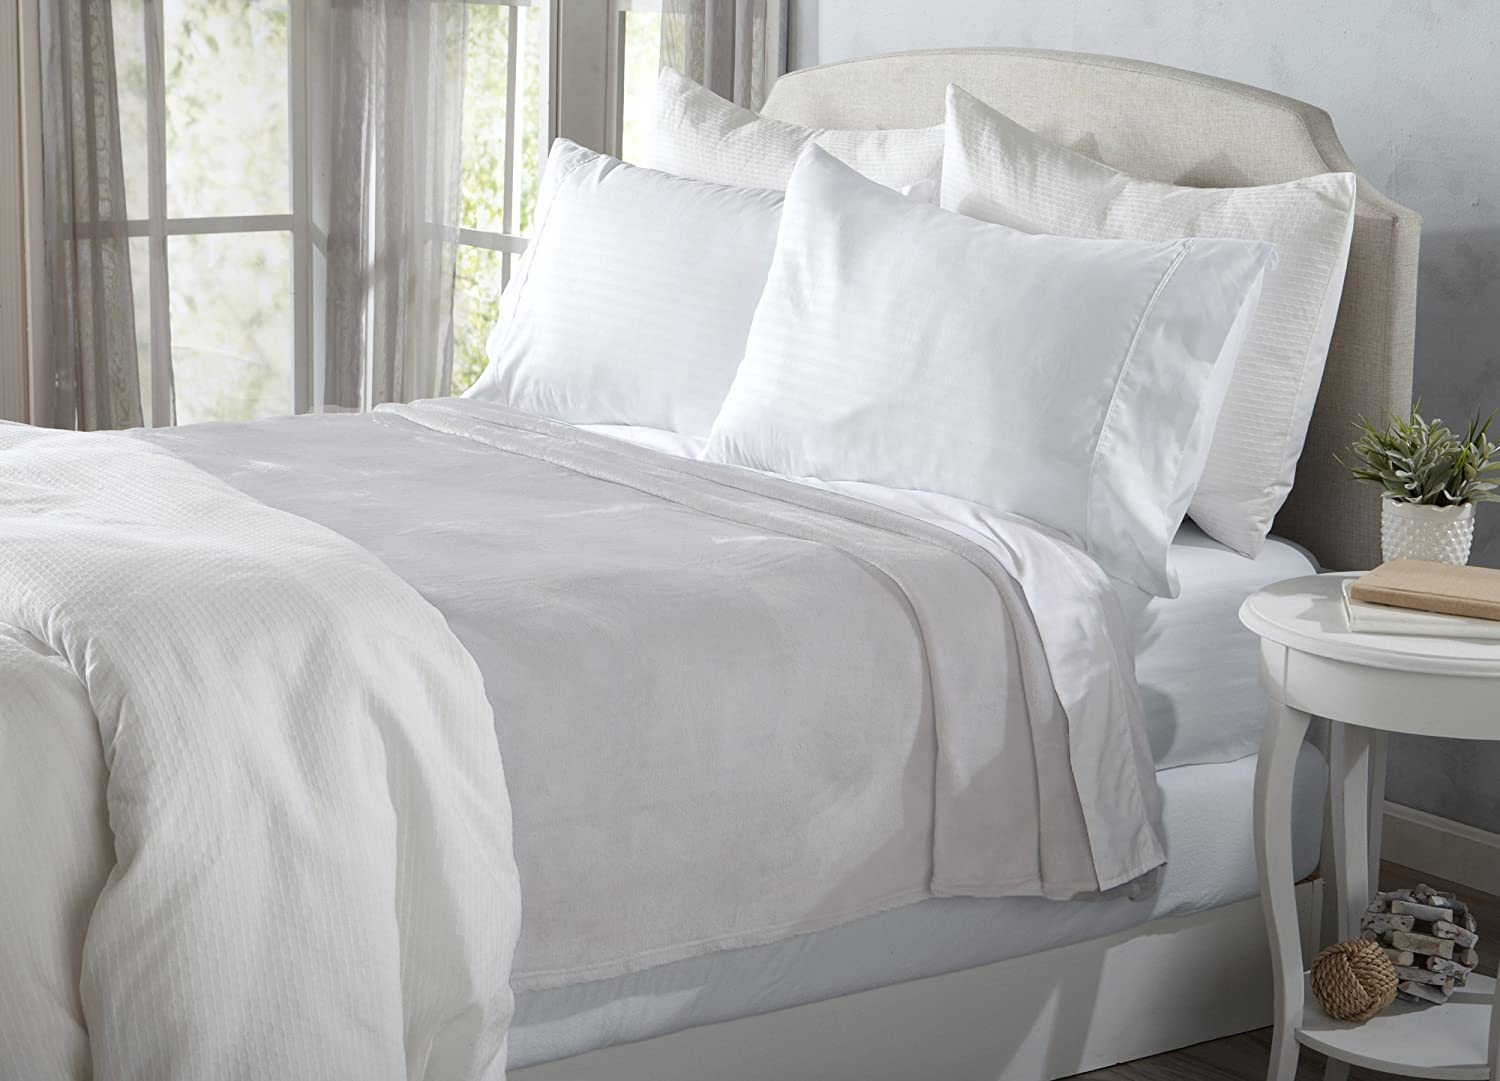 Ultra Velvet Plush Fleece All-Season Super Soft Luxury Bed Blanket.